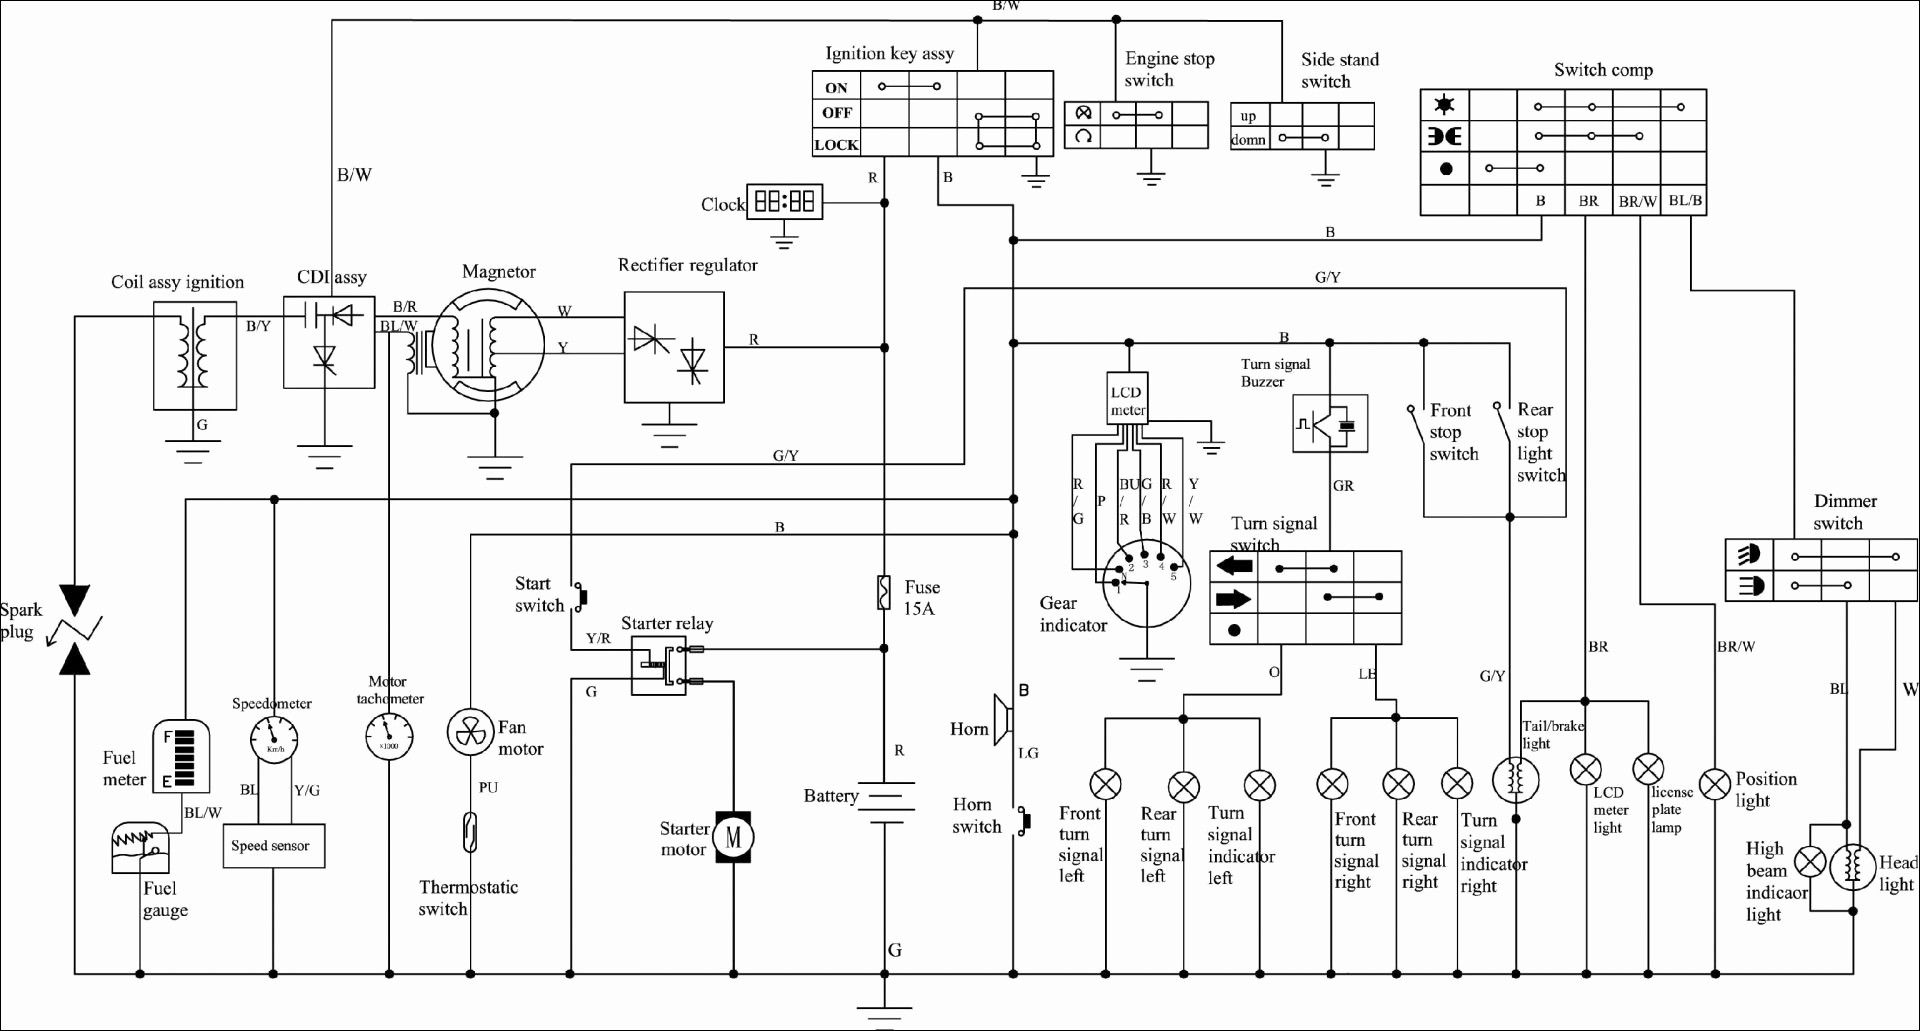 ... Bbbind.com Wiring Diagram | Wiring Diagram Image on bajaj chetak wiring  diagram, honda ...